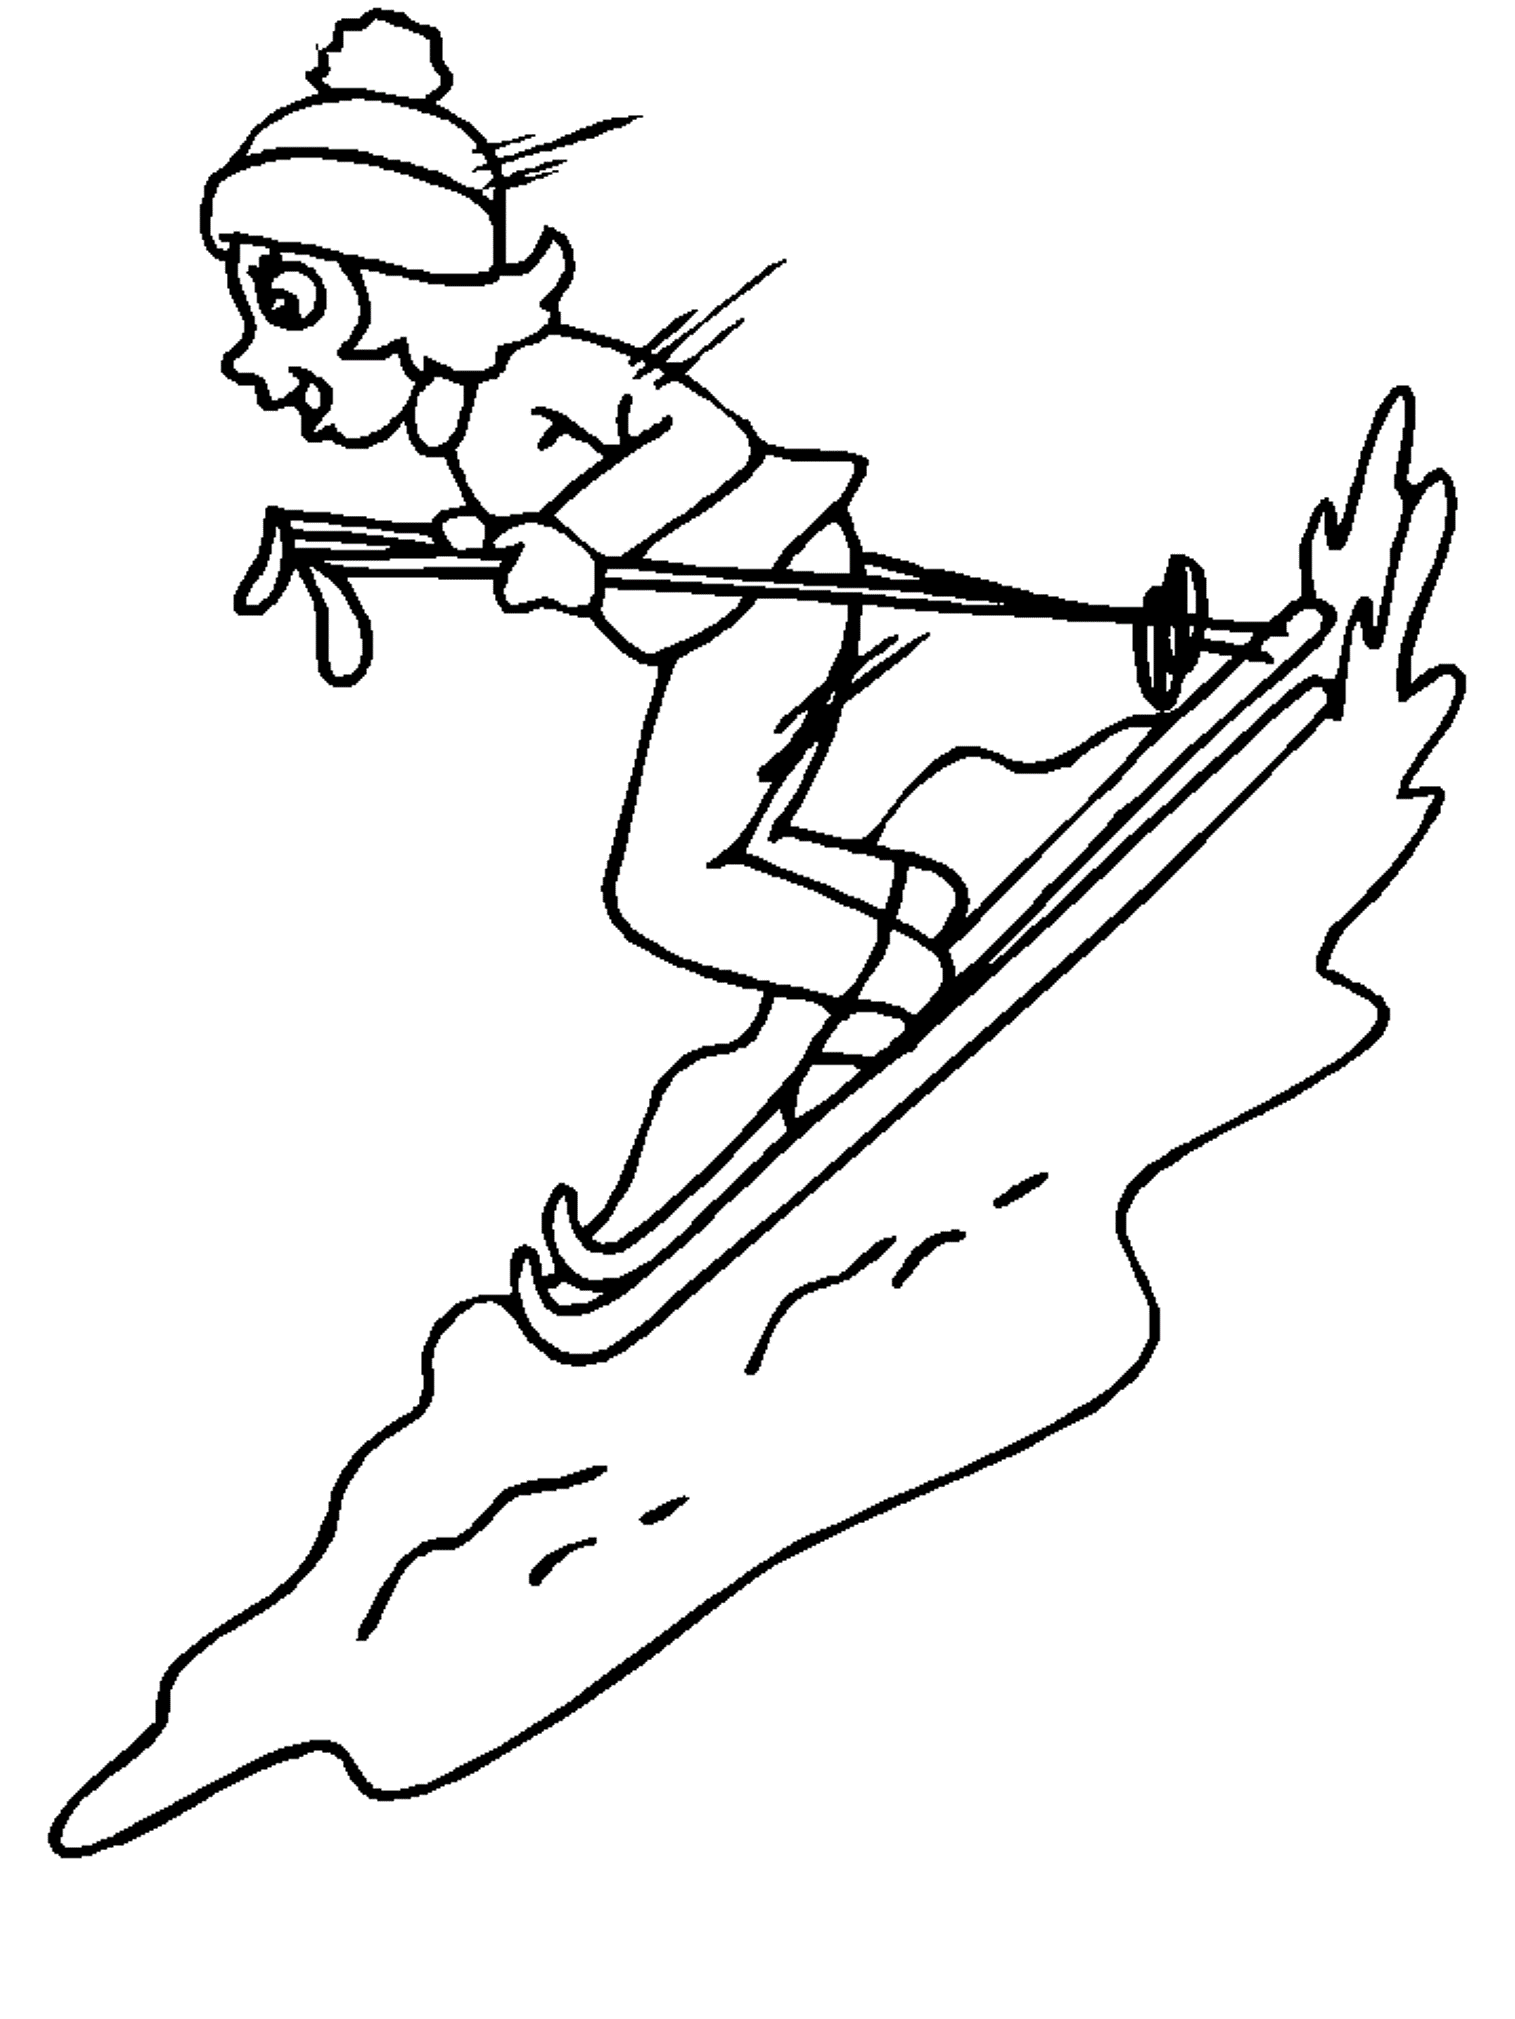 Happily Playing Skiing Coloring Pages For Kids B0v Printable Skiing Coloring Pages For Kids Sports Coloring Pages Coloring Pages Winter Bird Coloring Pages